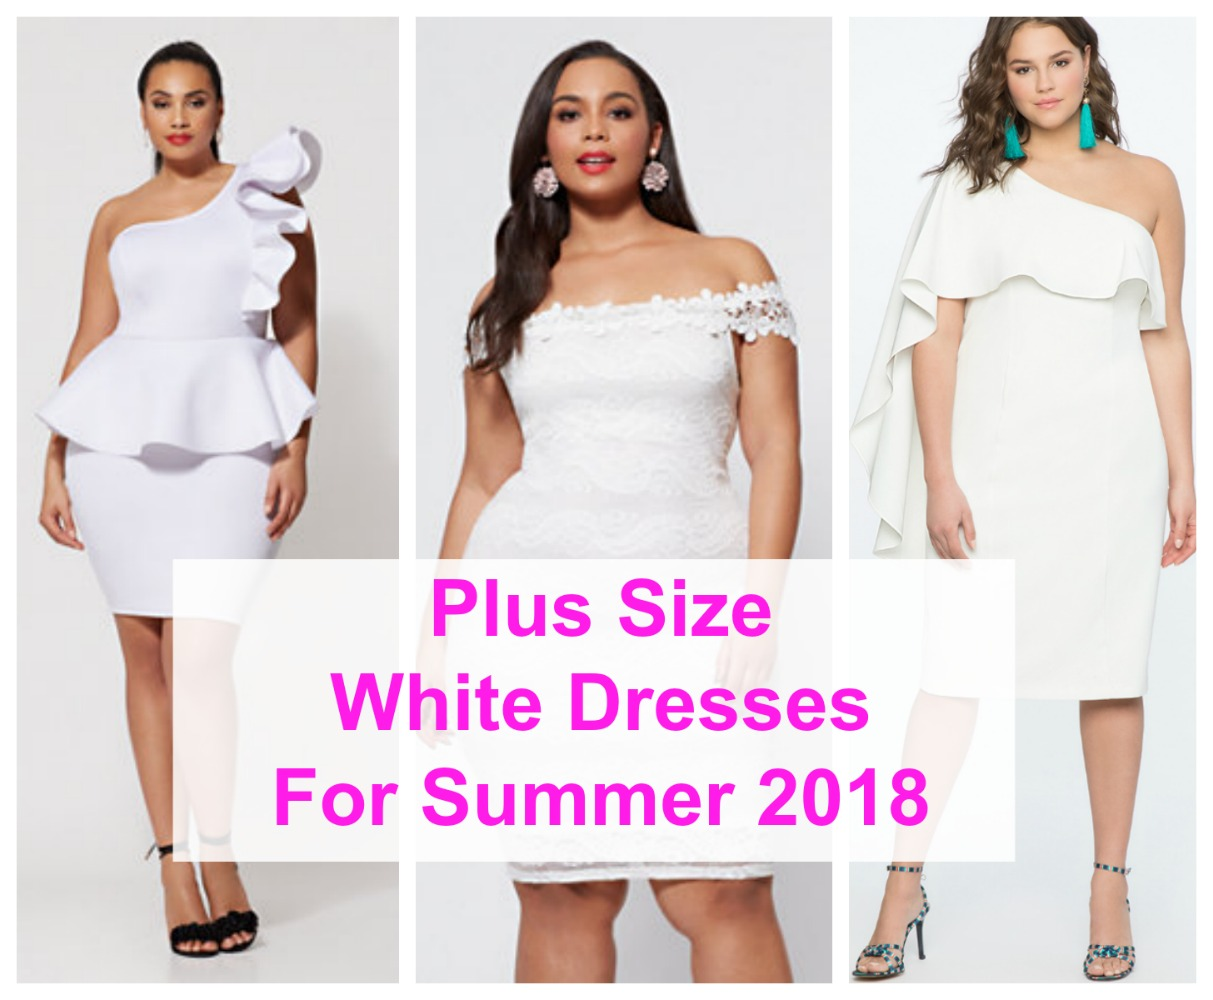 Chic White Plus Size Dresses For Summer